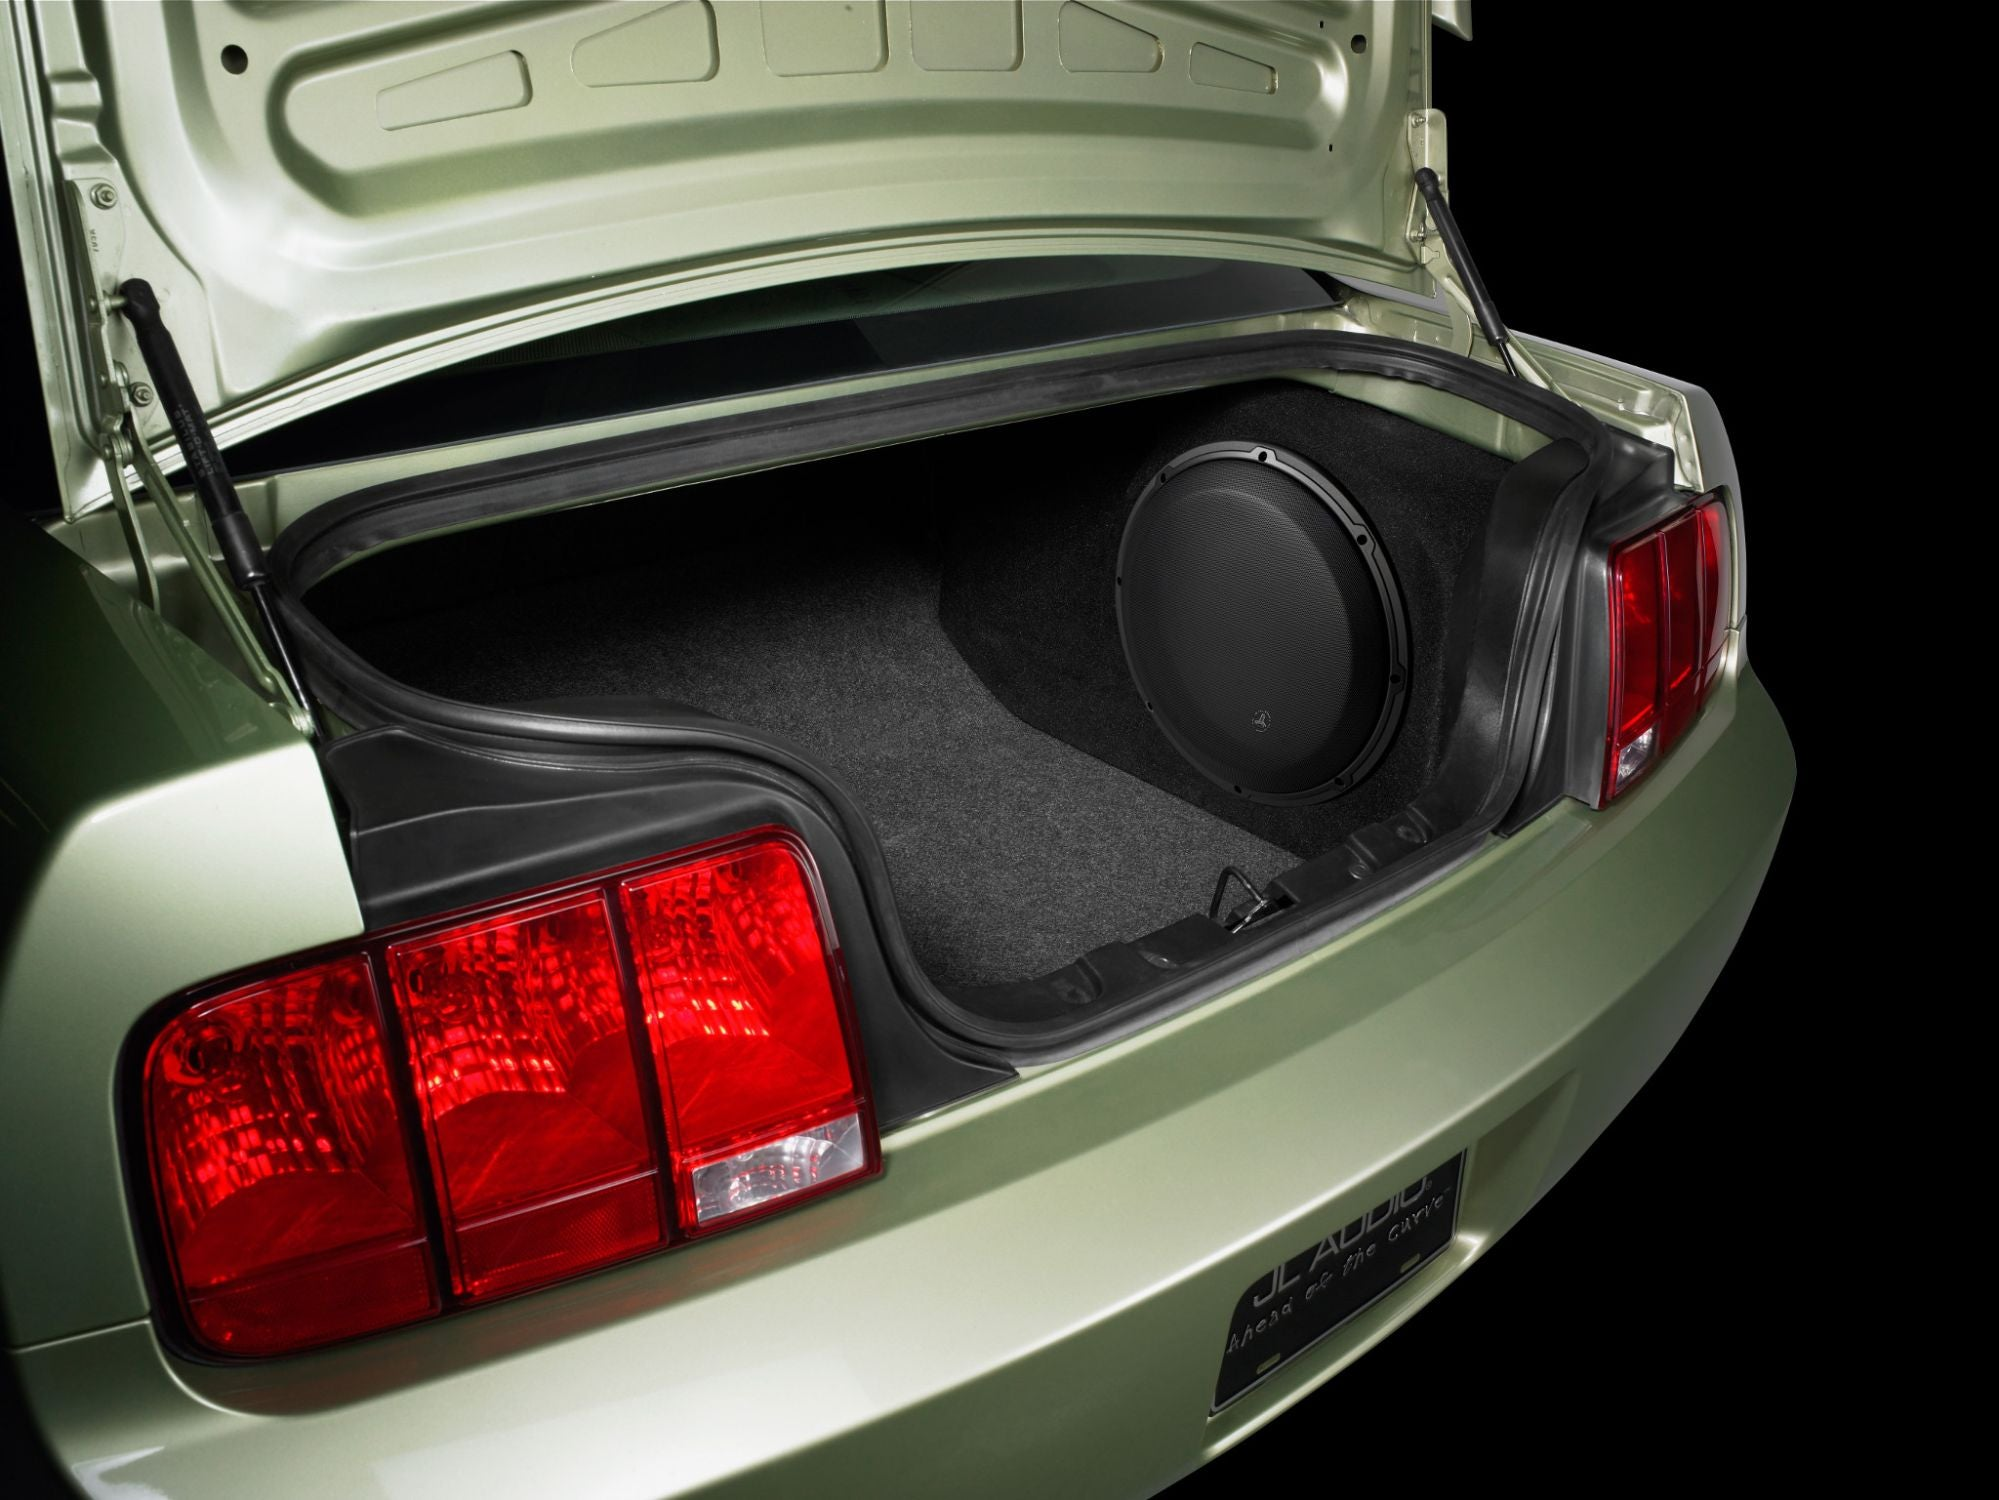 SB-F-MUCUPE-13W3v3 Stealthbox Installed in Vehicle